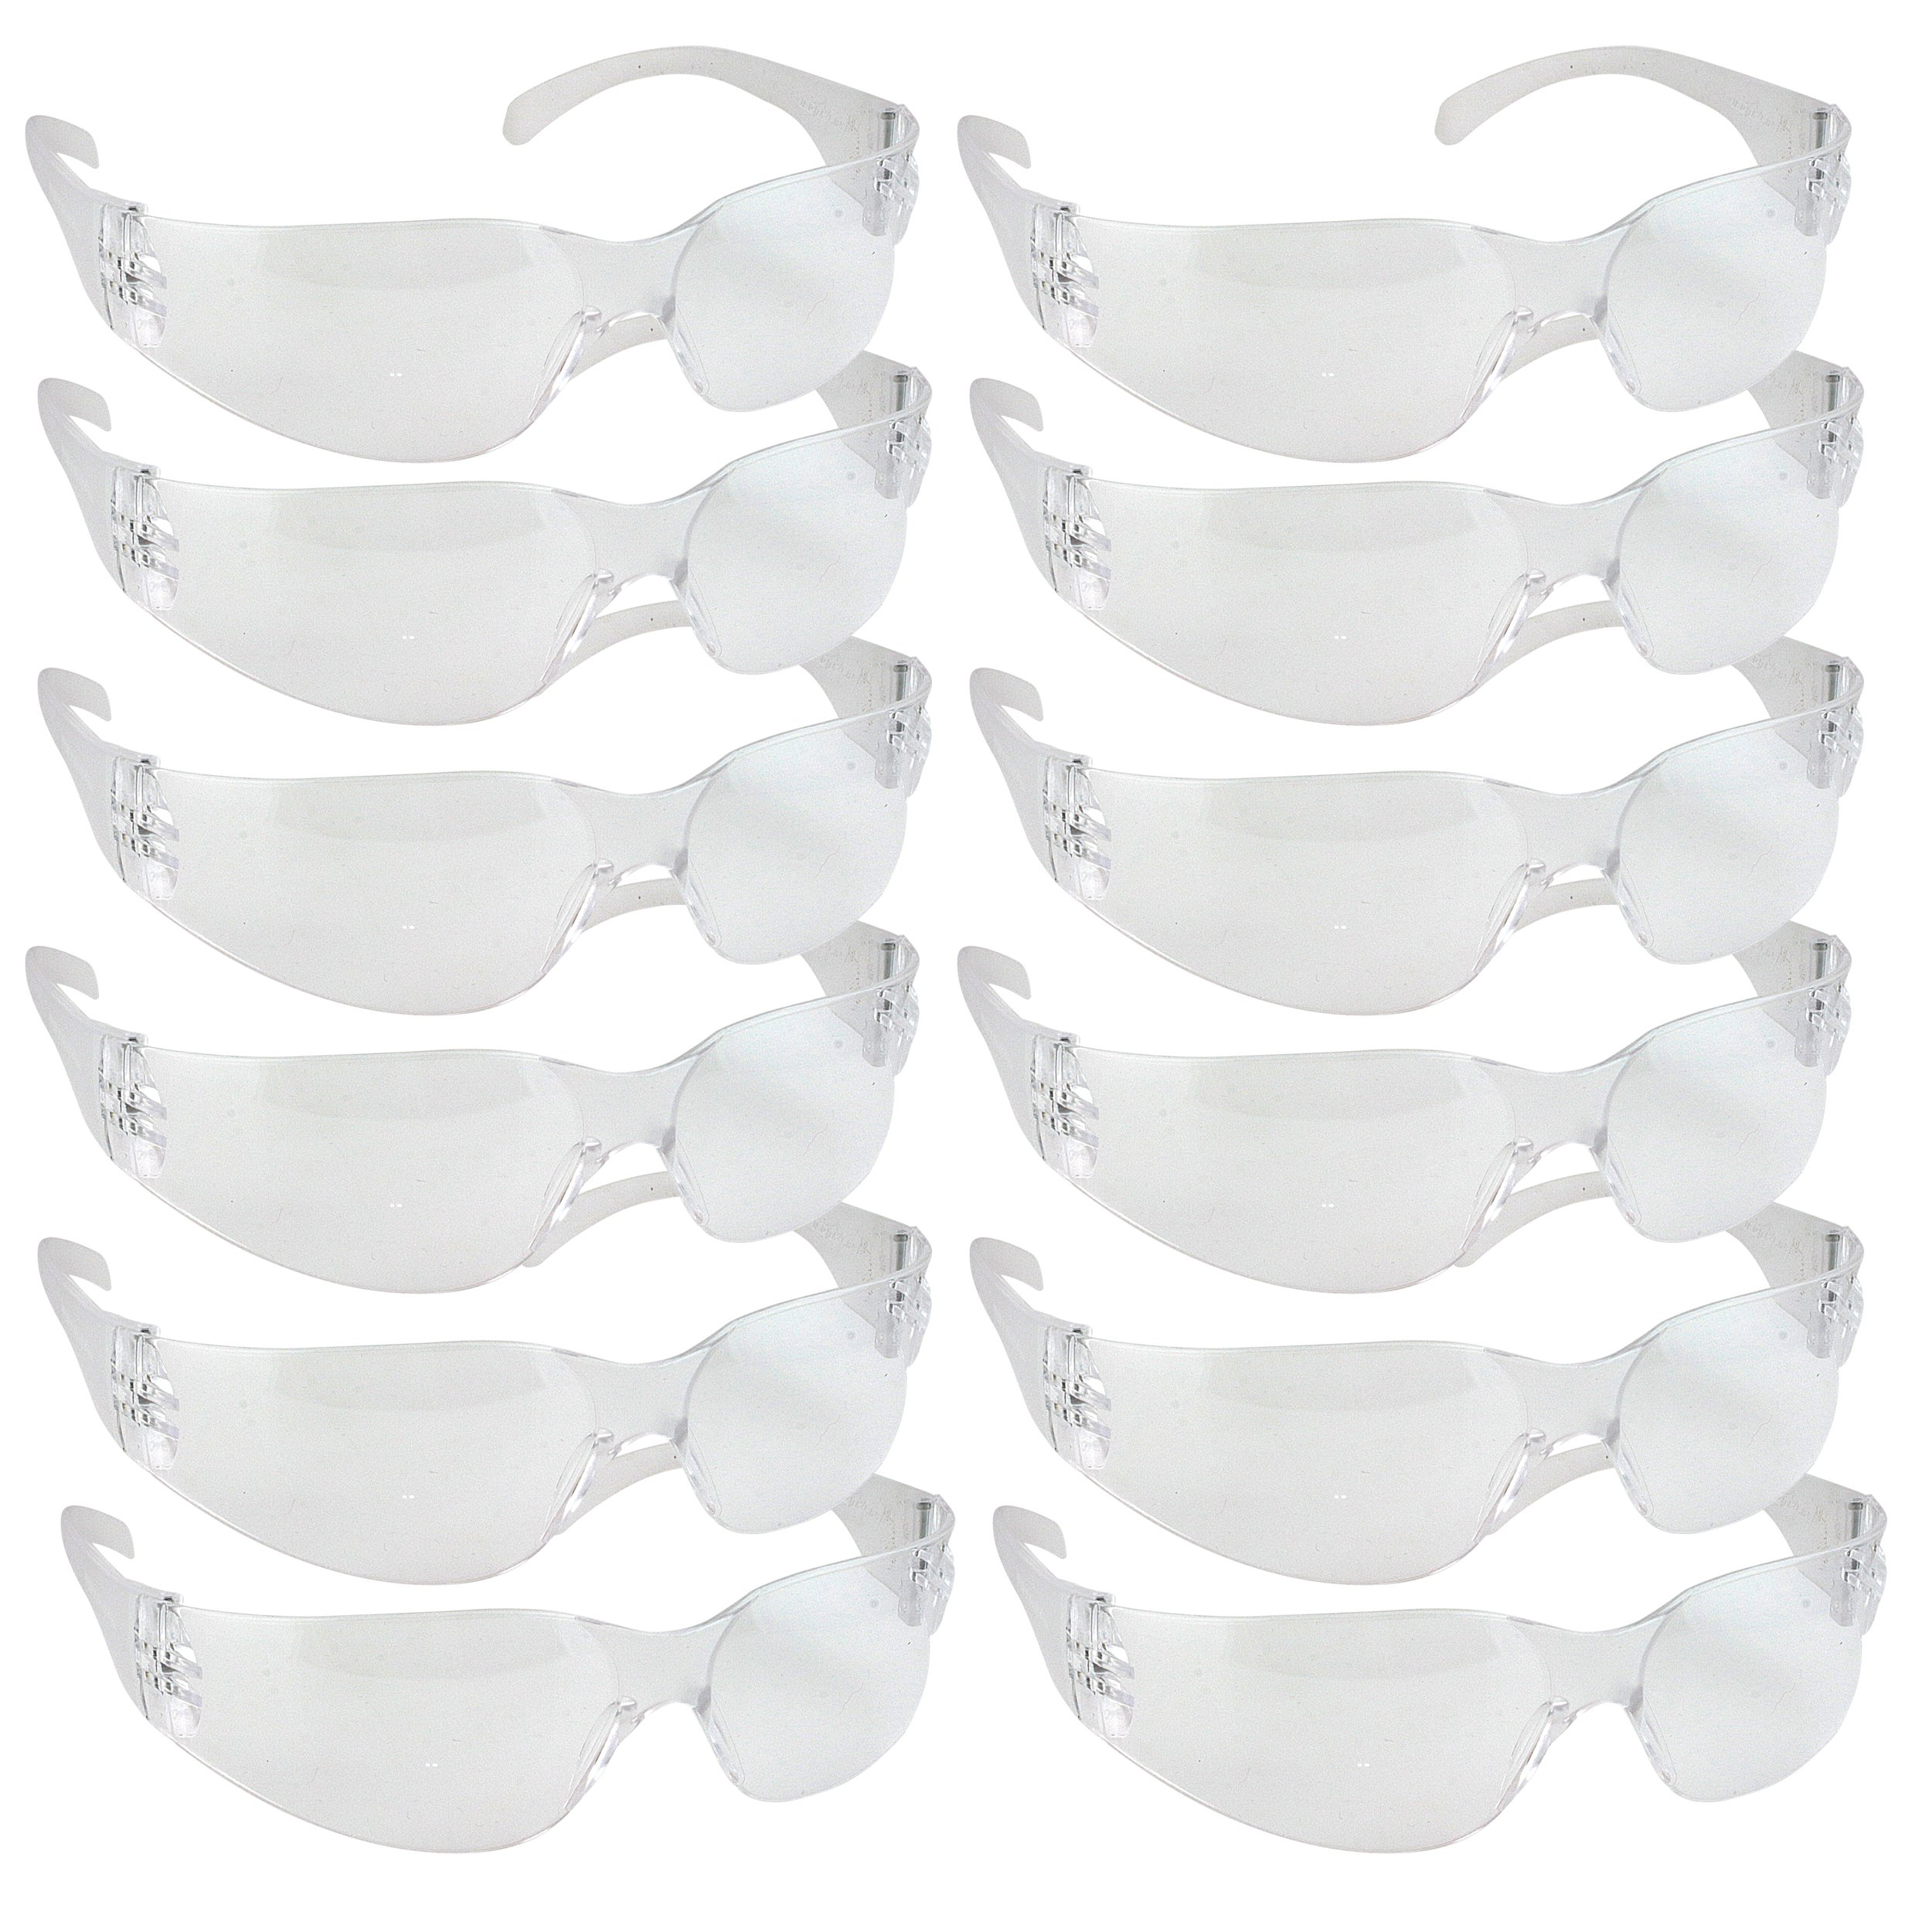 Safety Glasses, One Size, Clear Lens (Pack of 144)($0.90/Each)